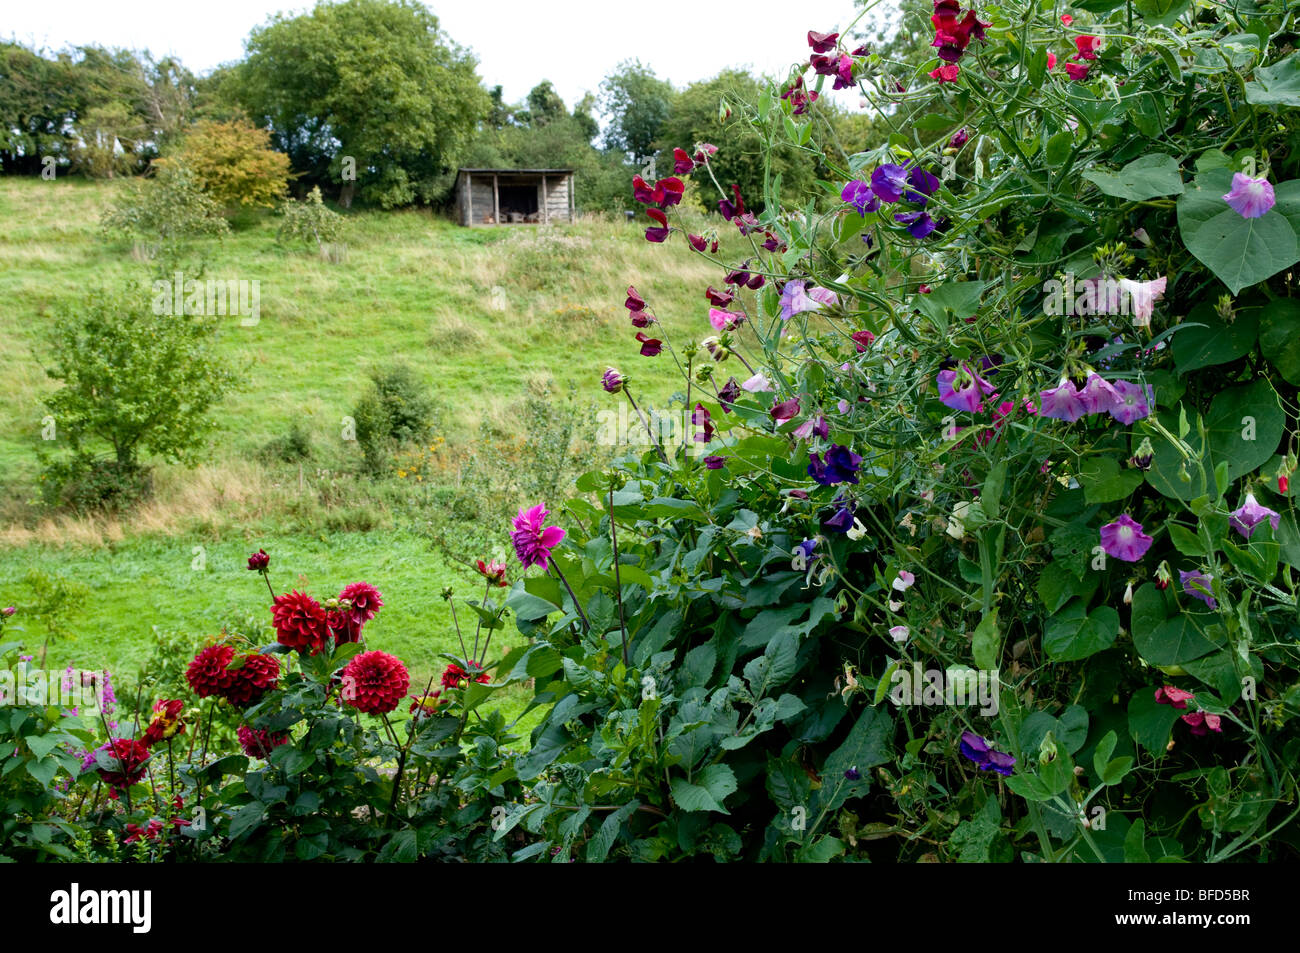 Hanham Court Gardens, Cotswolds. Summer flowers with field and wooden shelter in the distance. - Stock Image